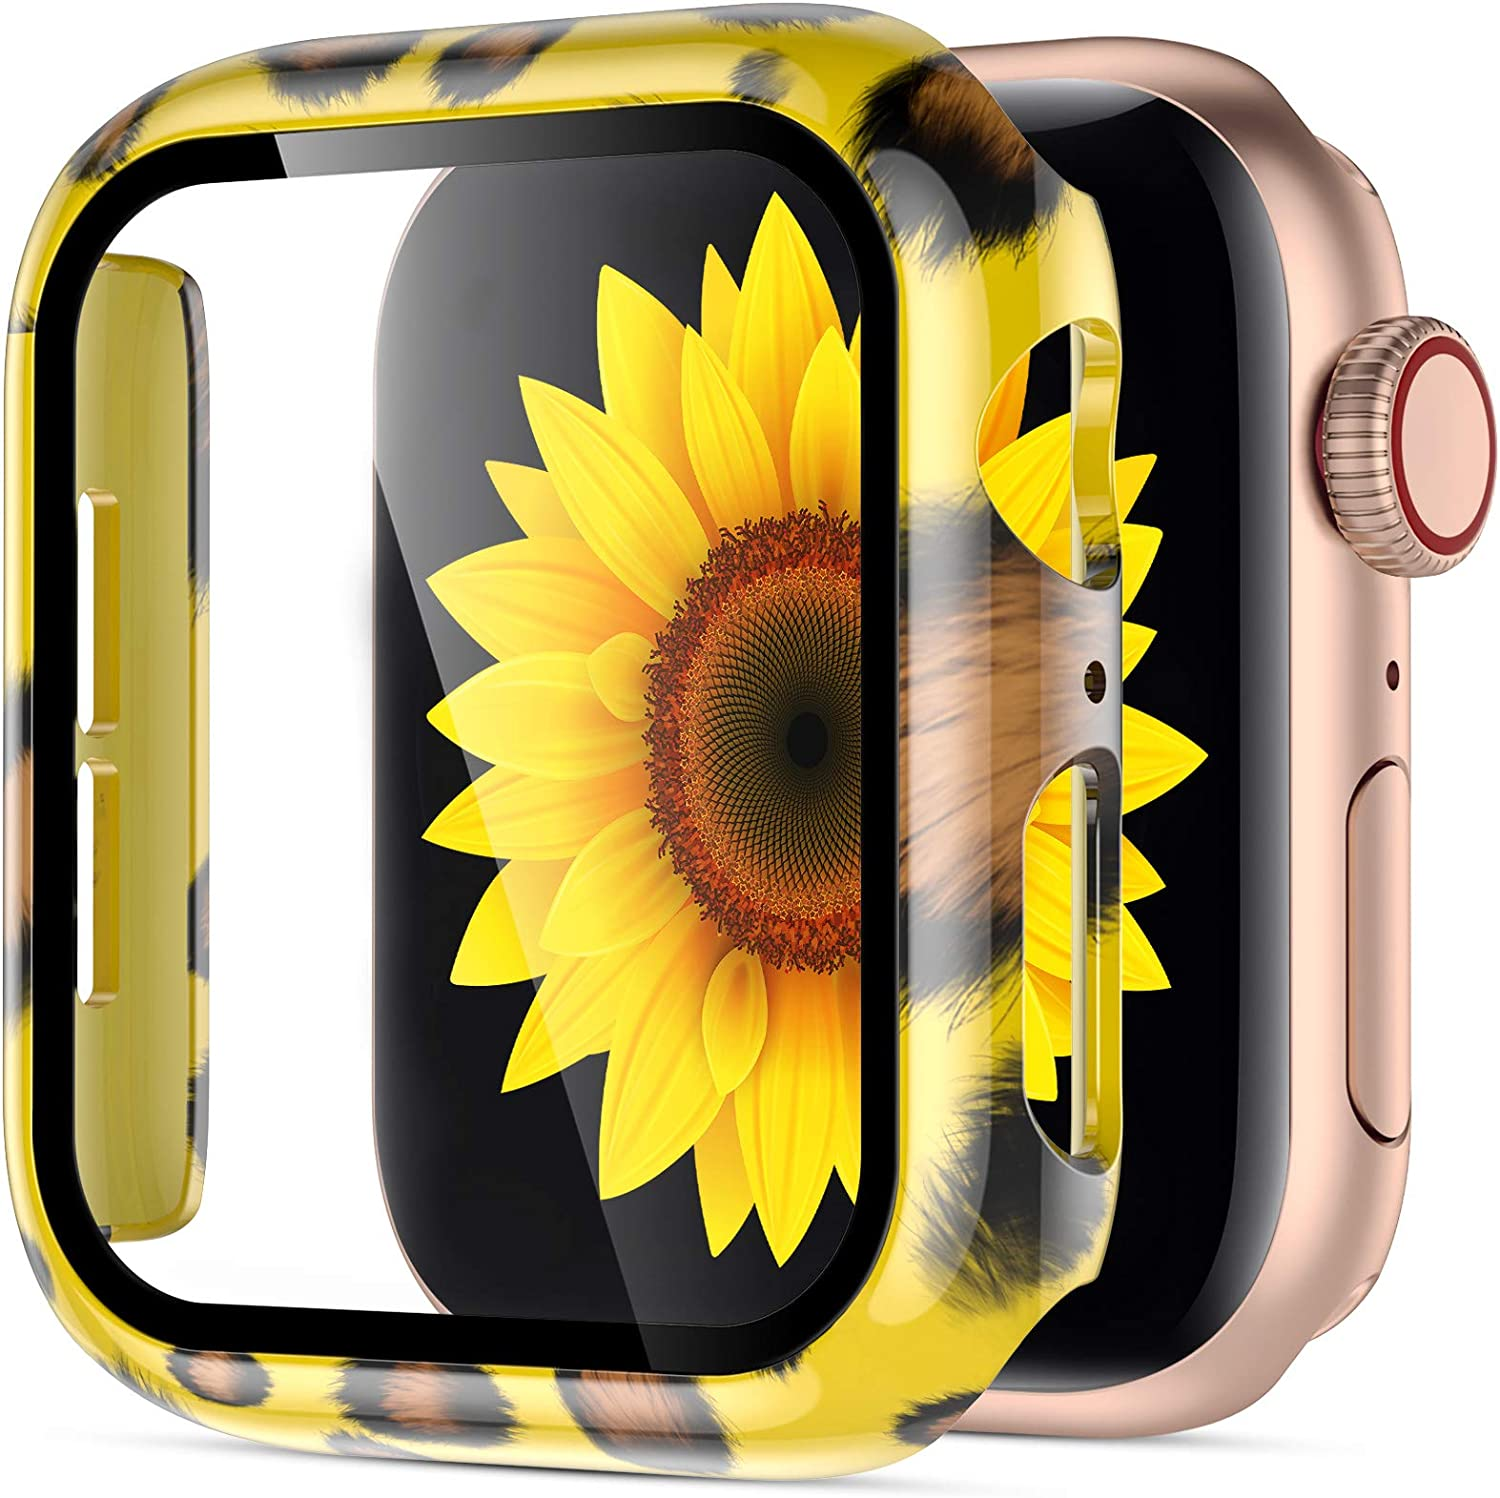 GEAK Compatible with Apple Watch Series 3/2/1 with Screen Protector 38mm, High Sensitivity Protective Case with Fadeless Printed Pattern for Apple Watch Series 3 38mm Case Yellow Leopard